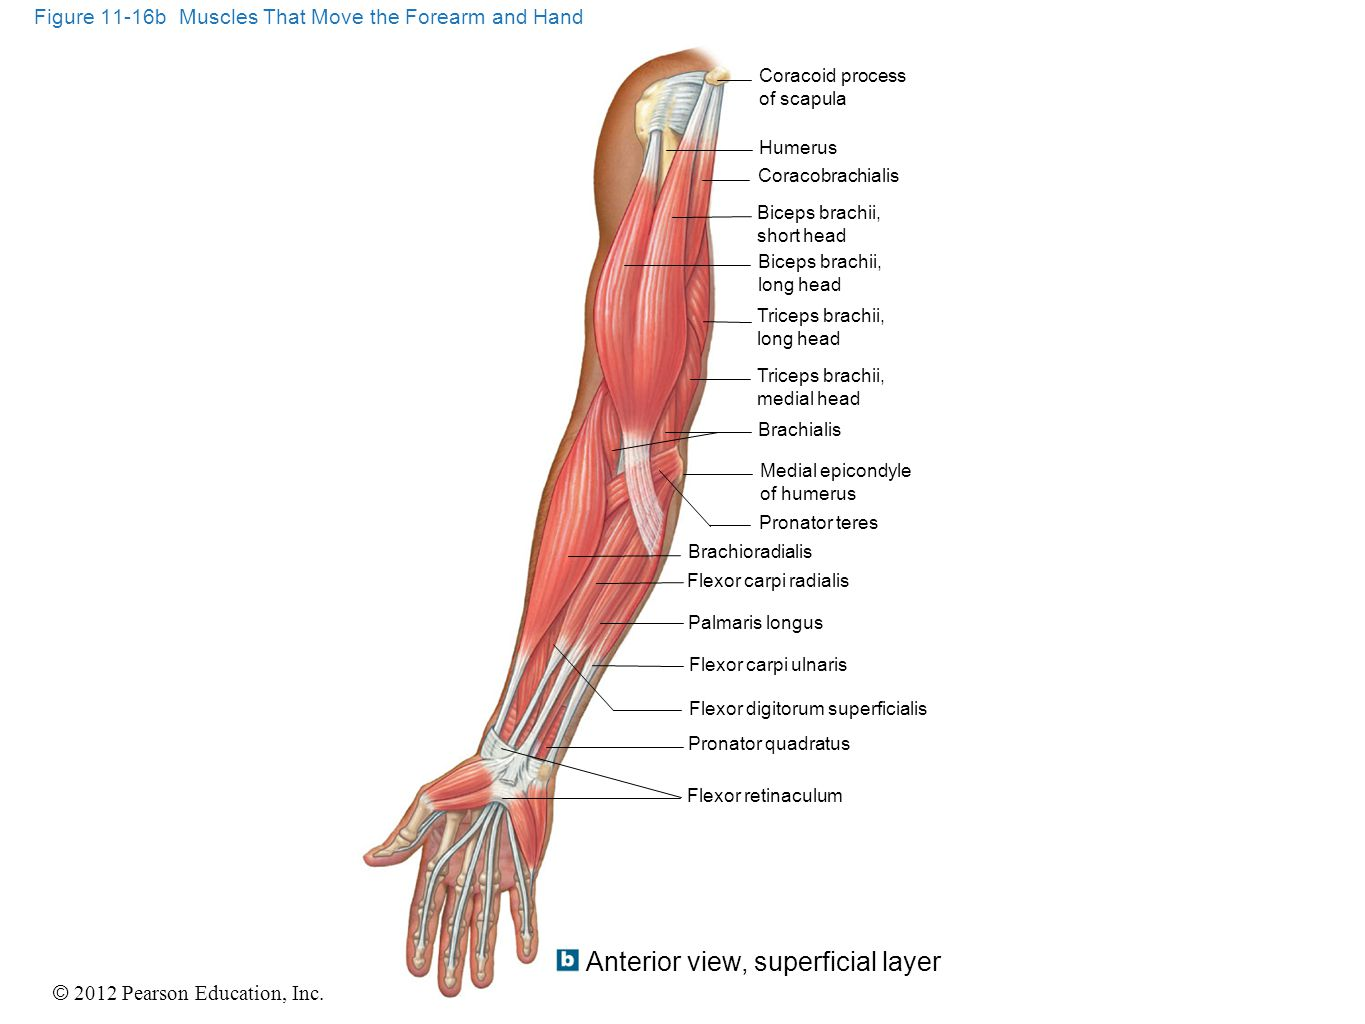 Superficial Forearm Muscles Posterior View Hand